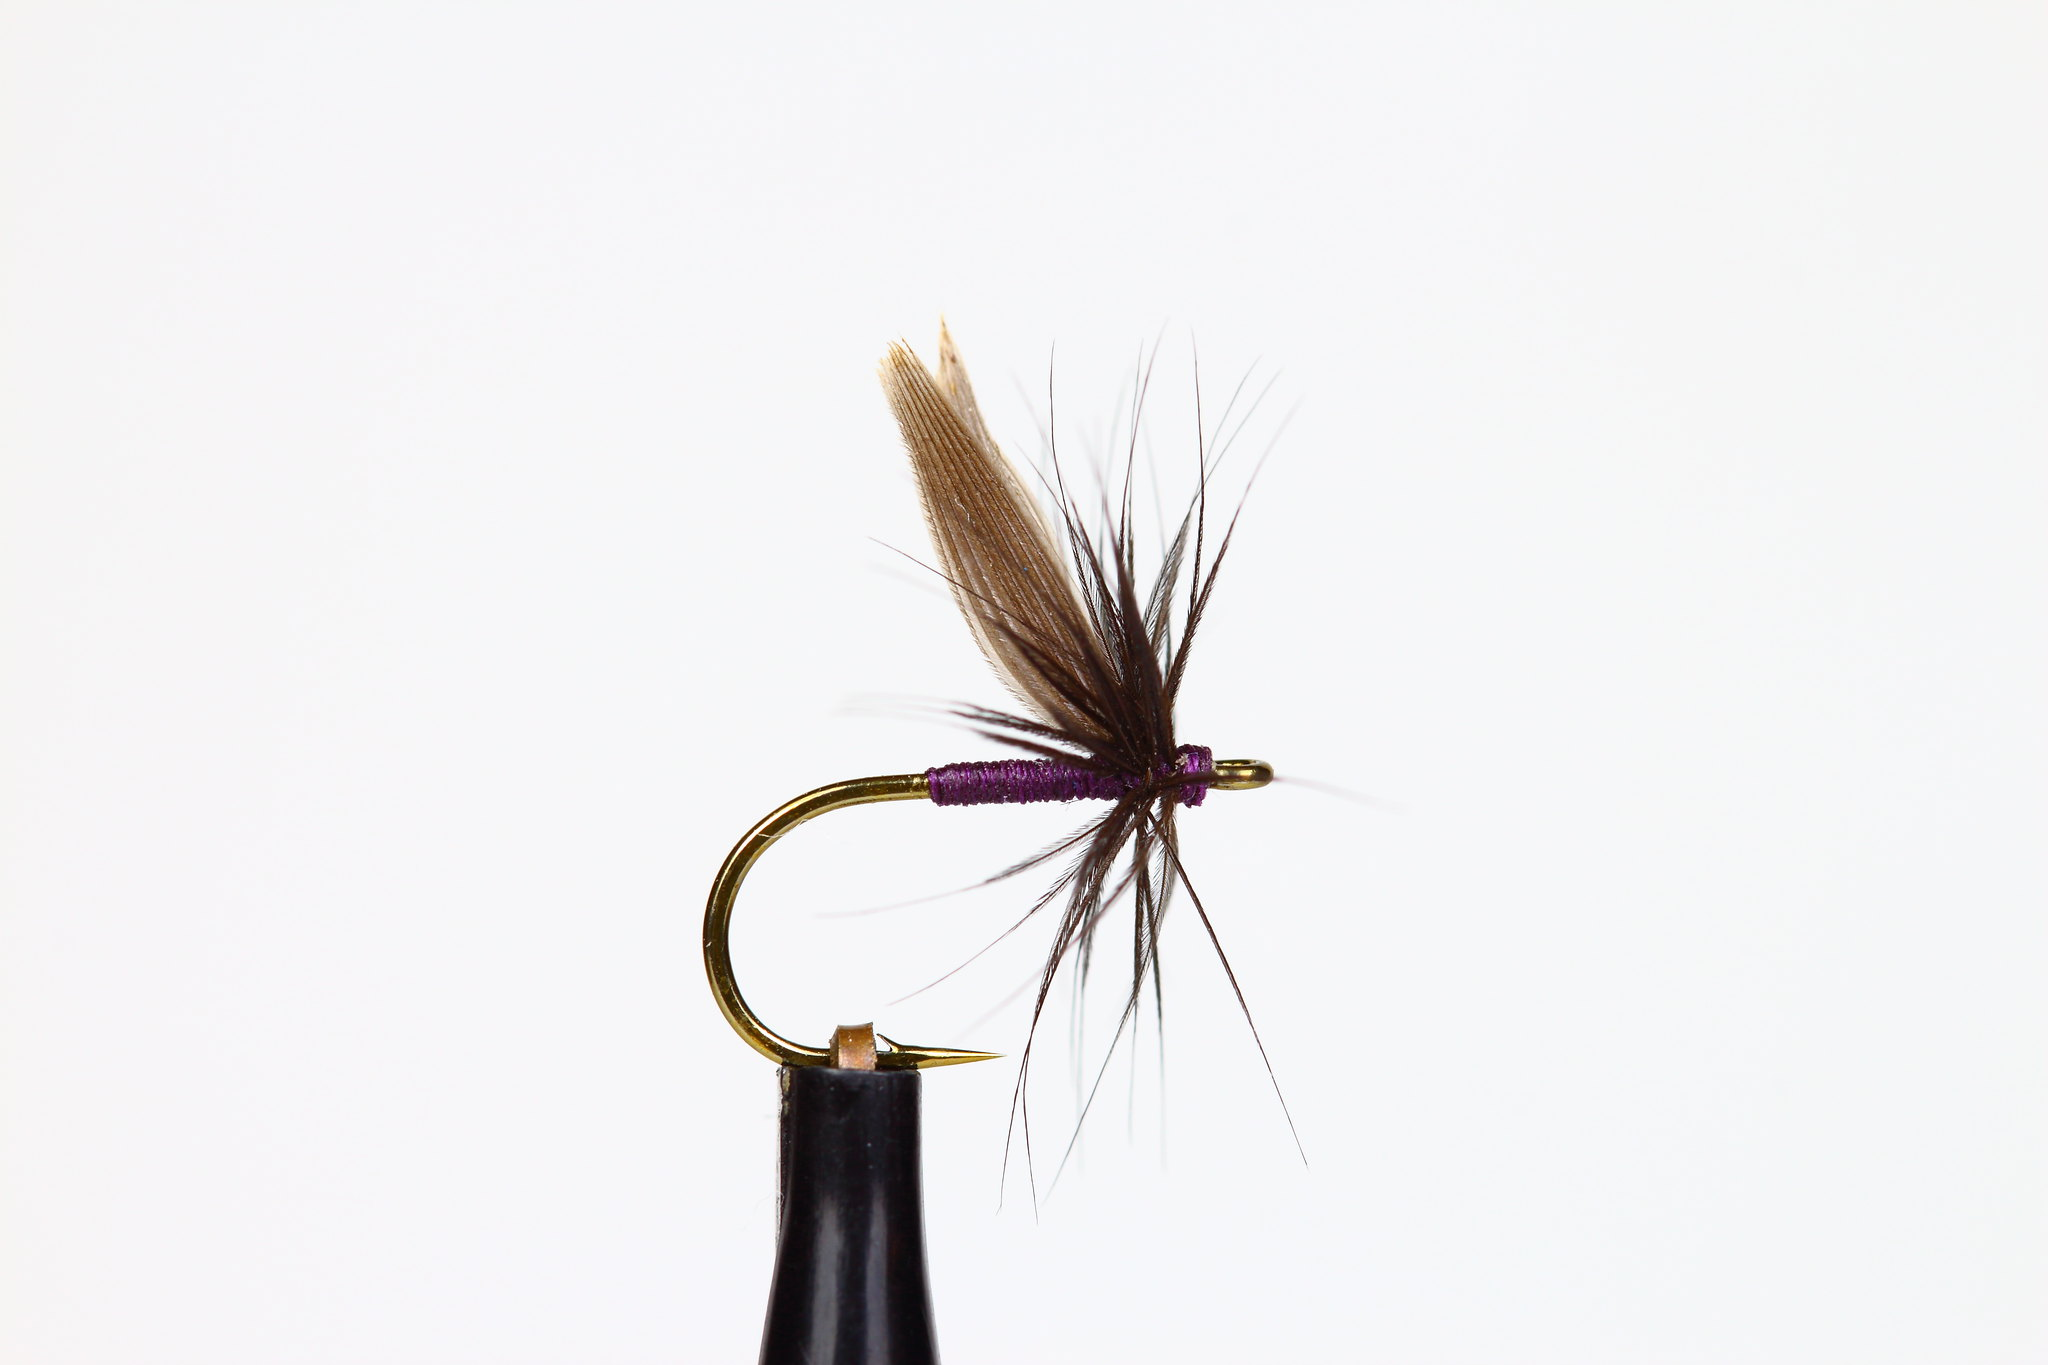 Broughton Point Wet Fly